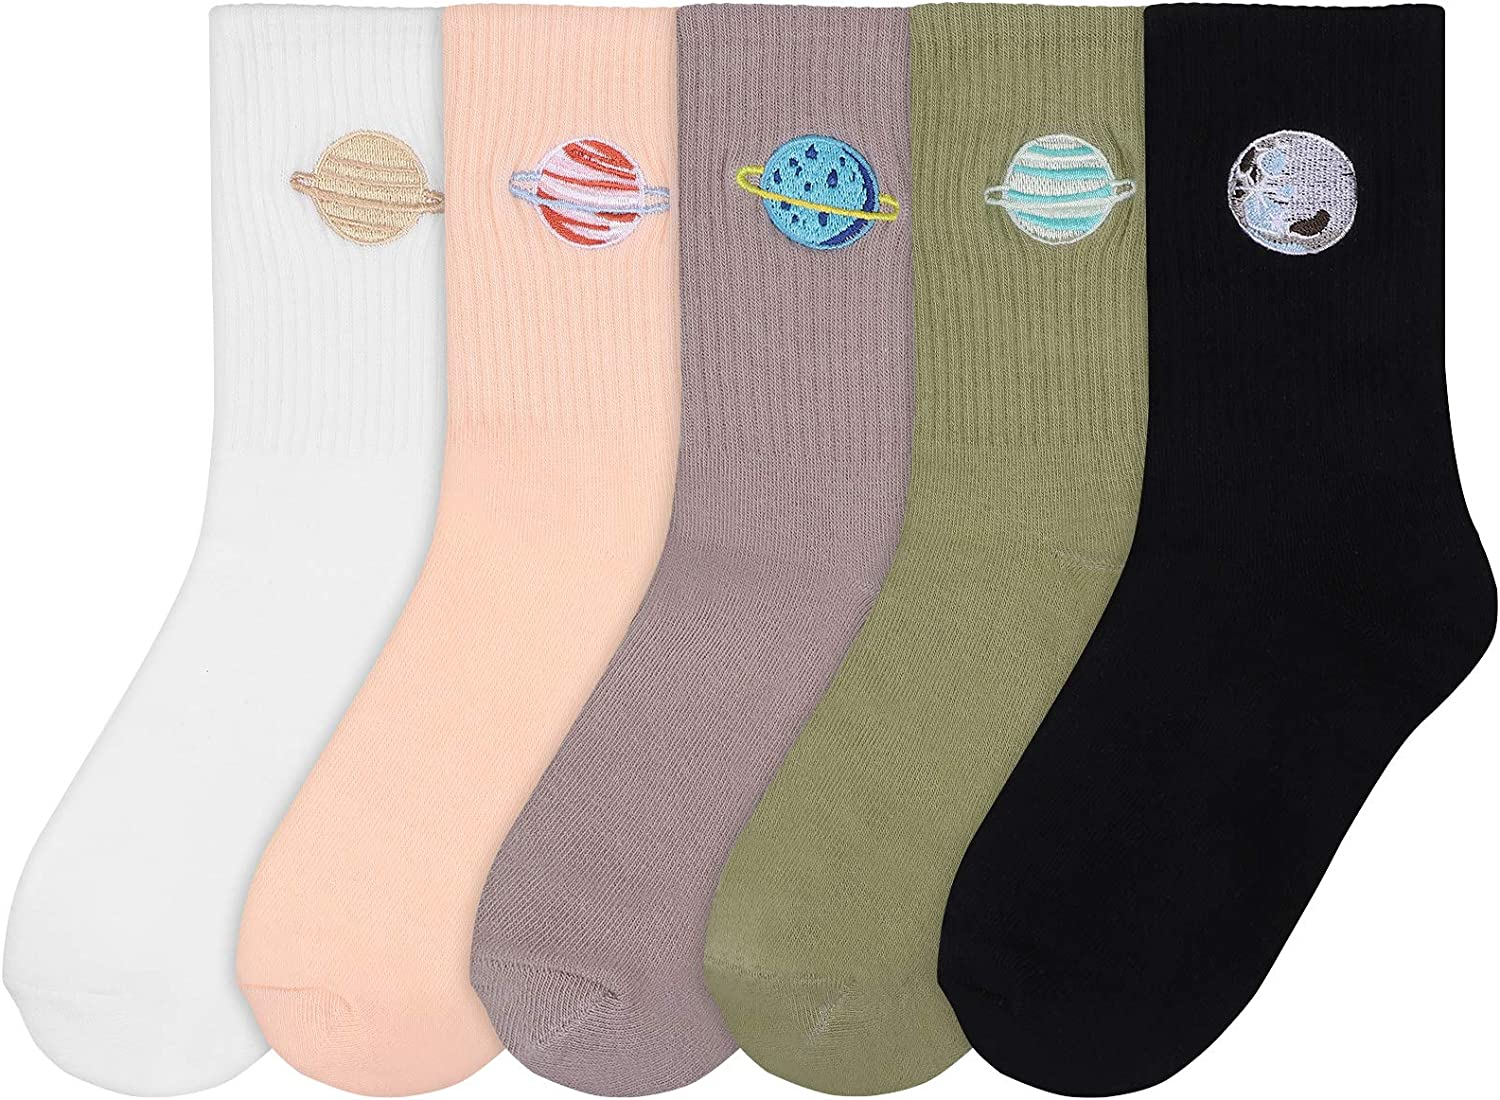 KESYOO 5 Pairs Women Cotton Planet Socks Mid-Tube Embroidered Socks Fashion Daily Casual Crew Socks for Womens & Girls